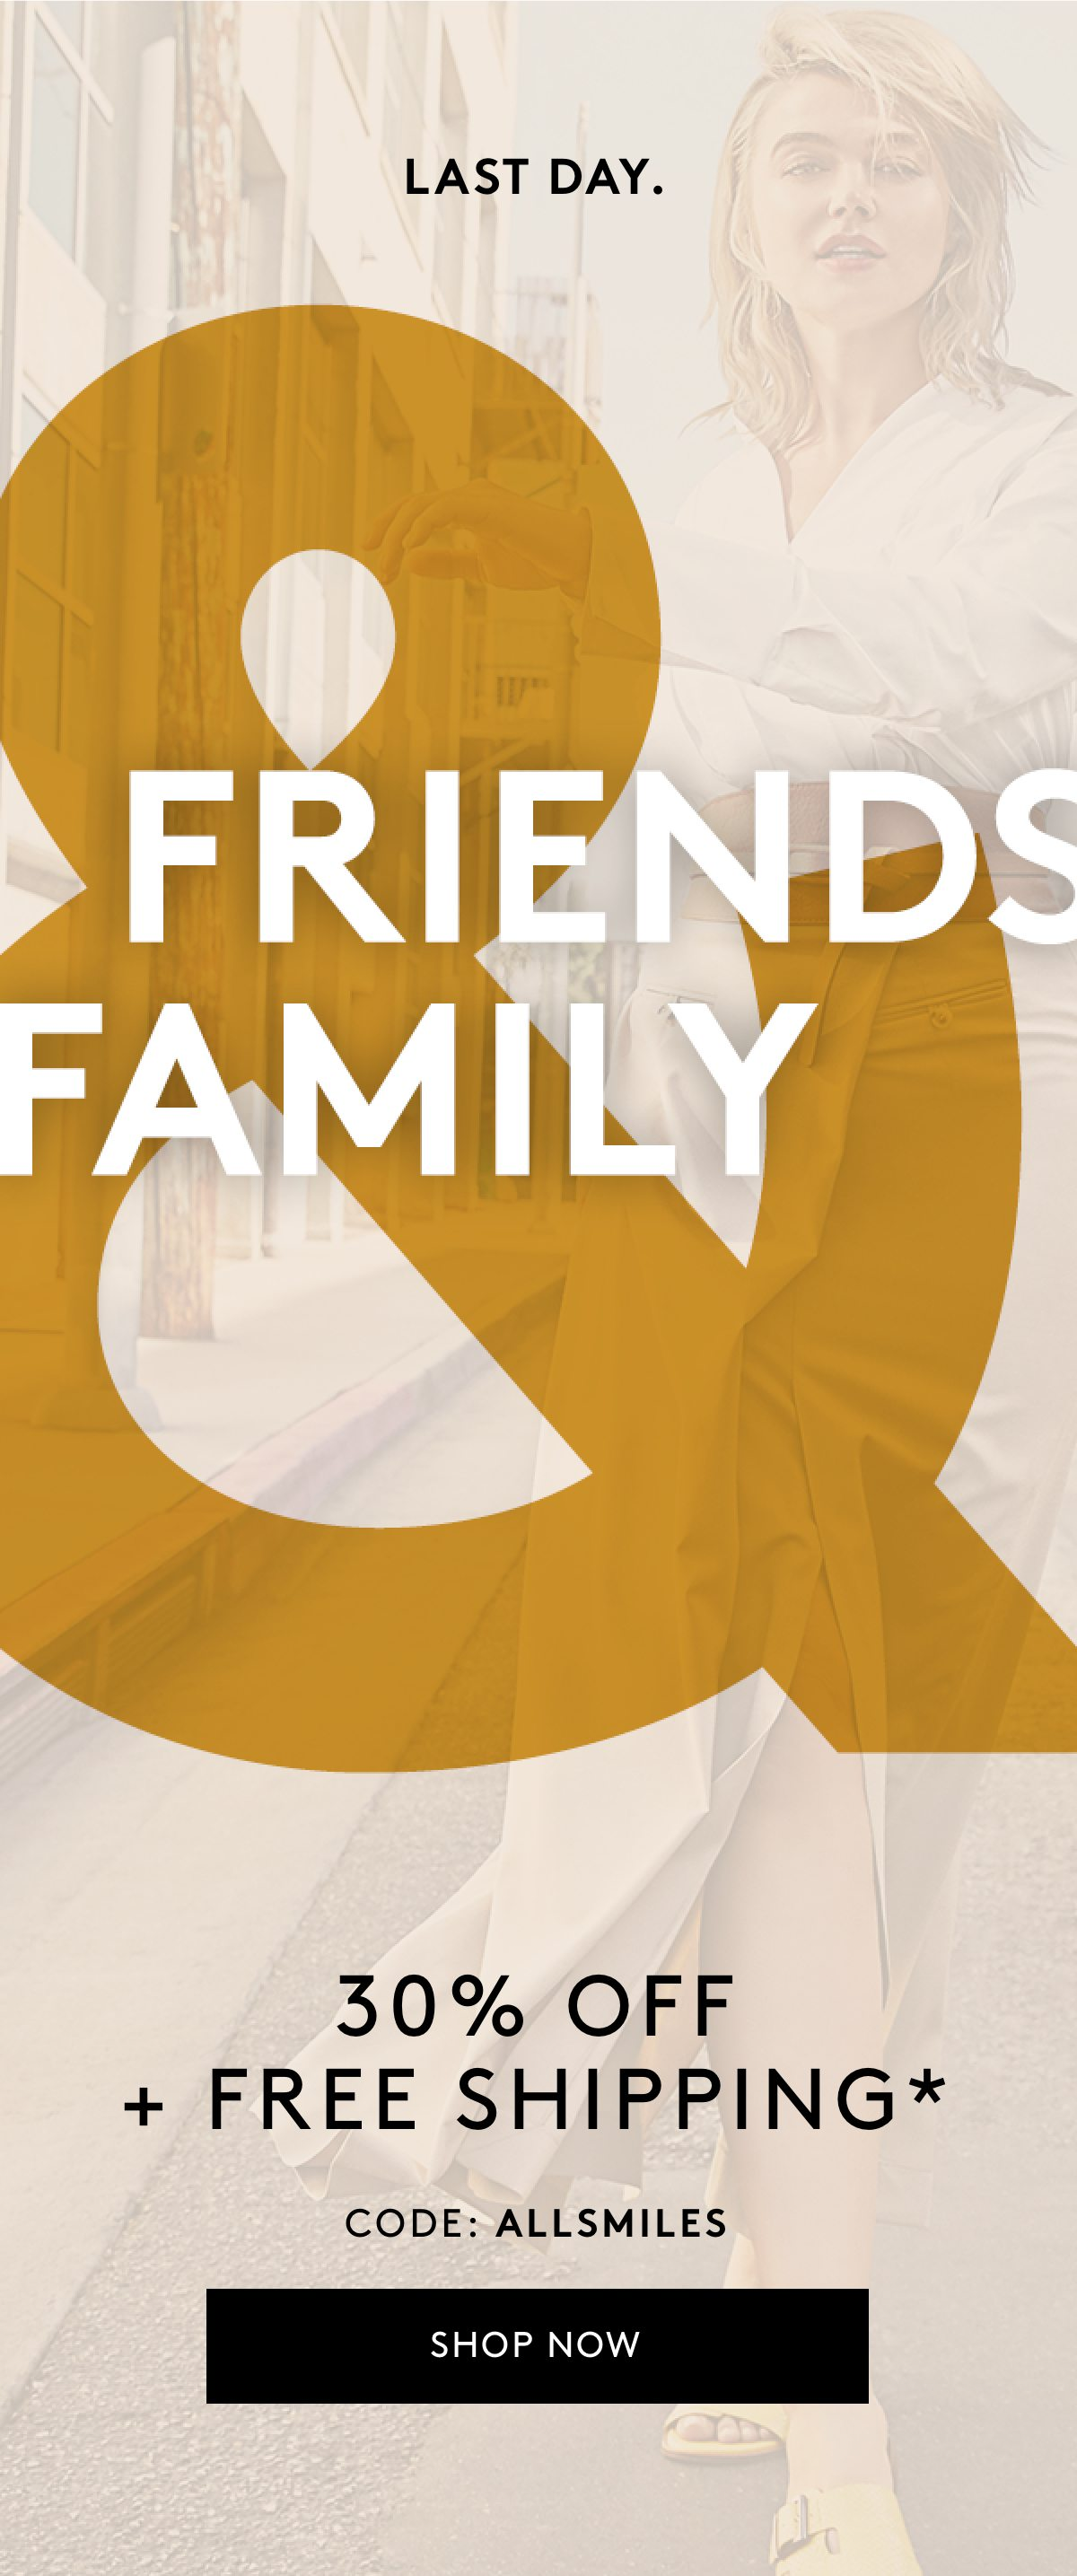 Last day. Friends Family 30% off + Free shipping* Code: ALLSMILES Shop Now